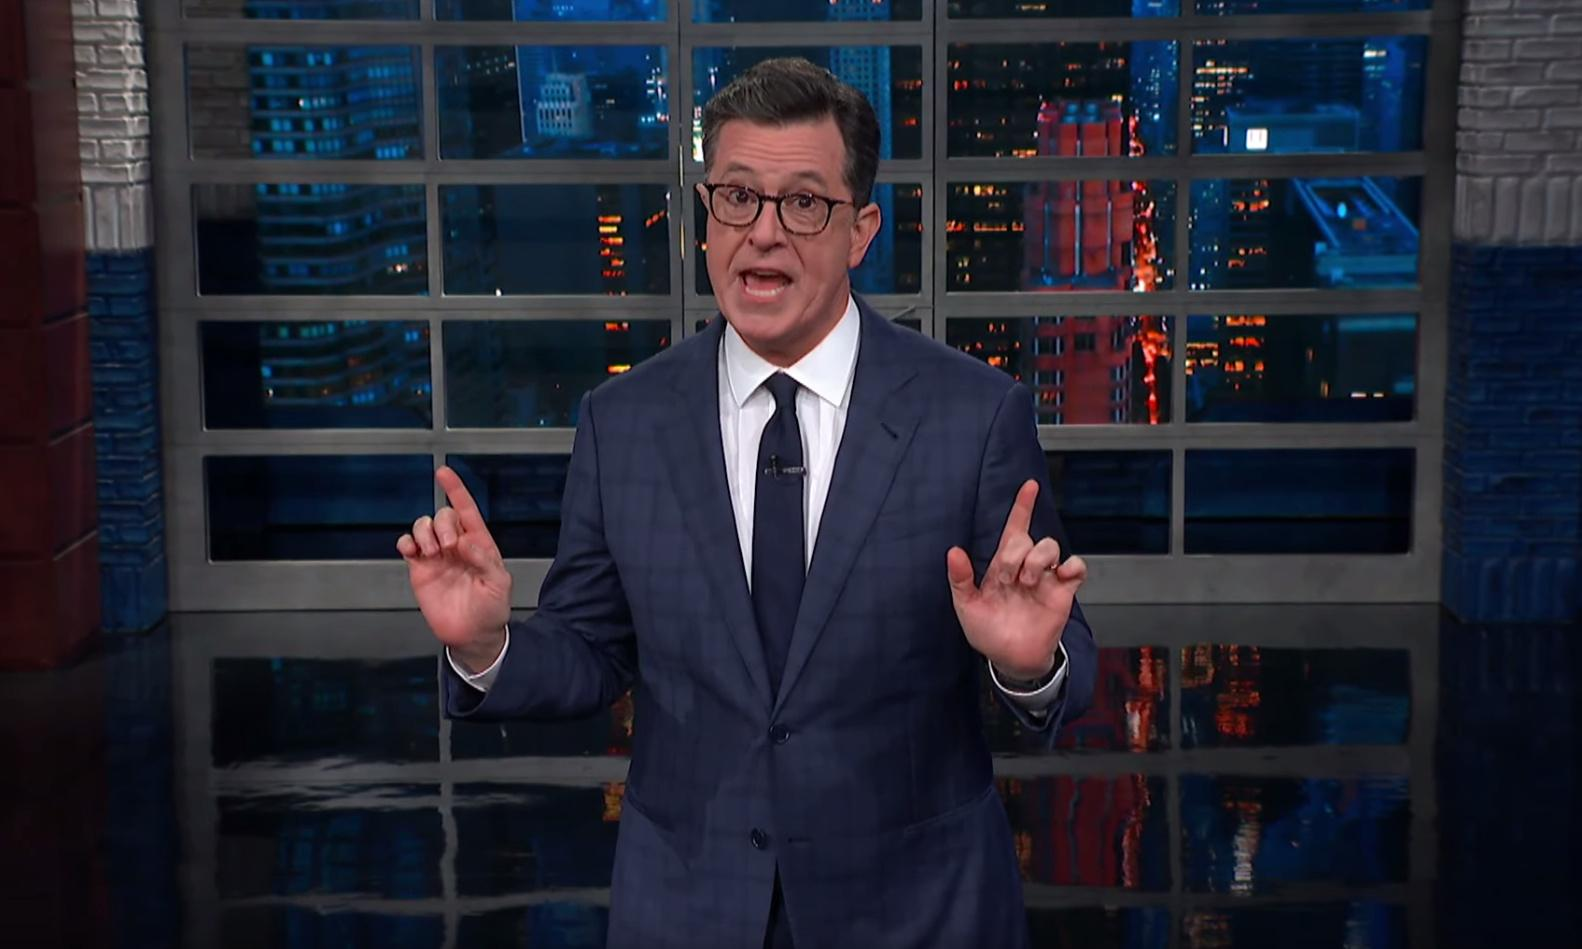 Stephen Colbert on Ben Carson: 'Not a rocket scientist, only a brain surgeon'